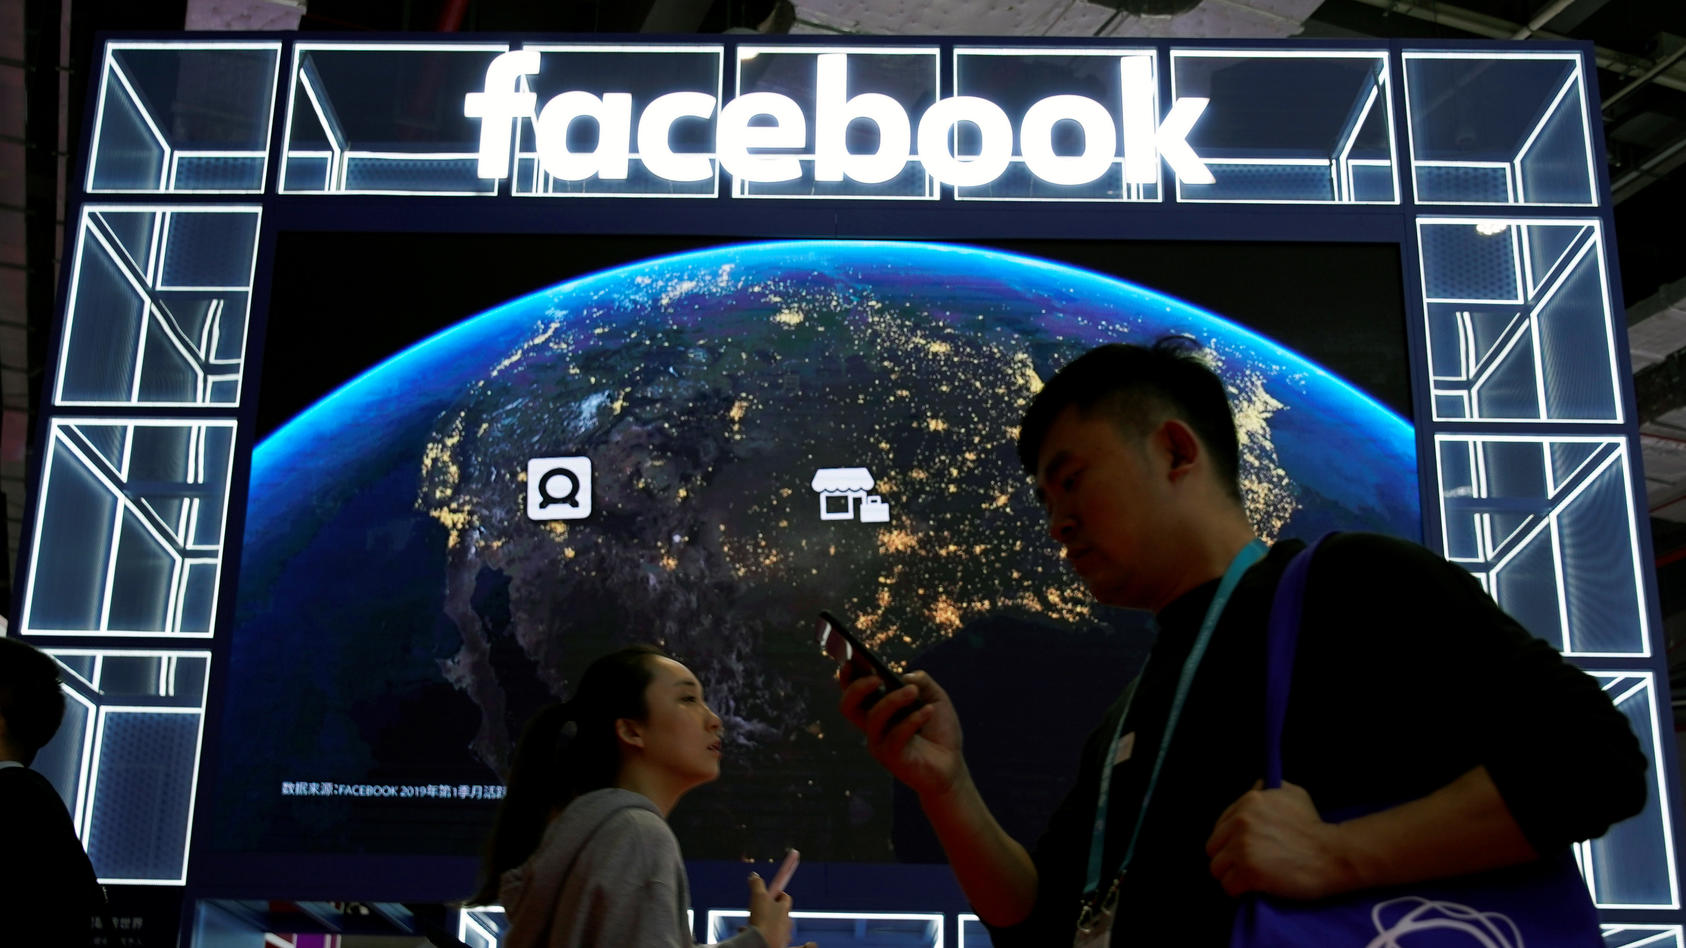 A Facebook sign is seen at the second China International Import Expo (CIIE) in Shanghai,